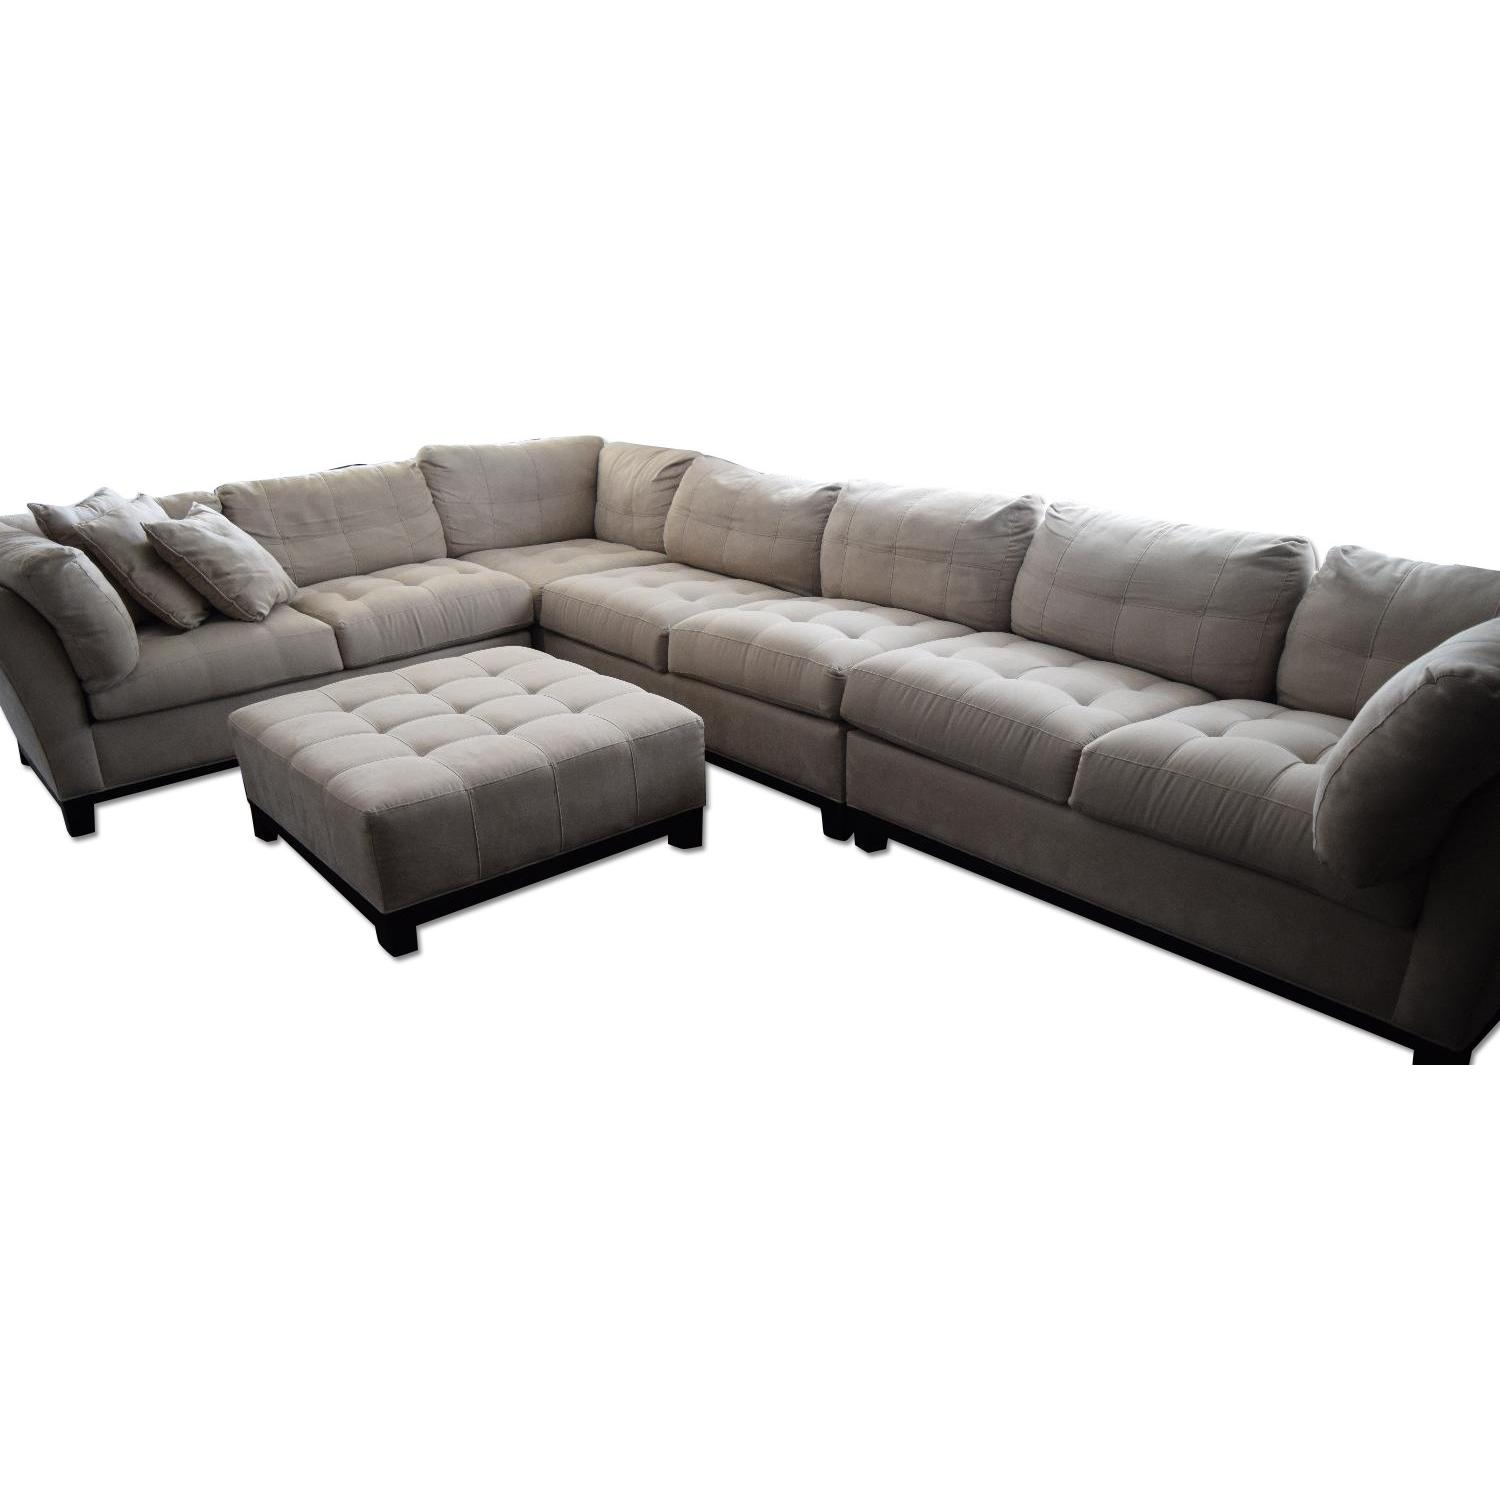 american leather sleeper sofa raymour flanigan barclay butera lombard cindy crawford chaise good sectional with